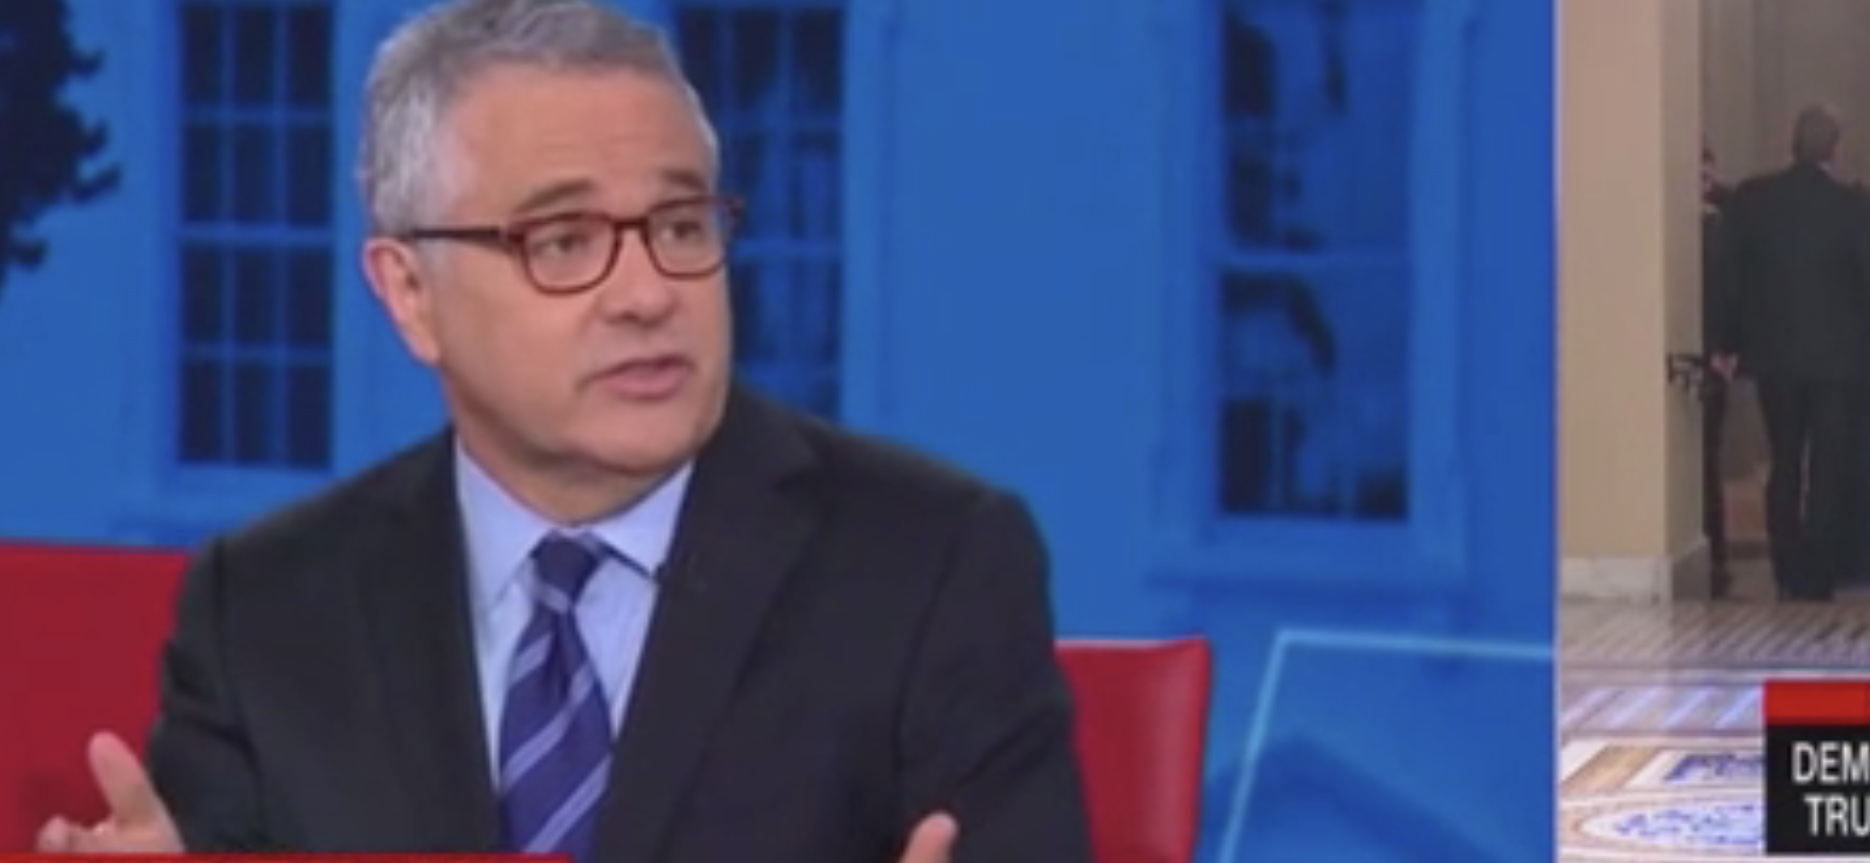 CNN Legal Analyst Aghast That Trump's Lawyers 'All White Men'